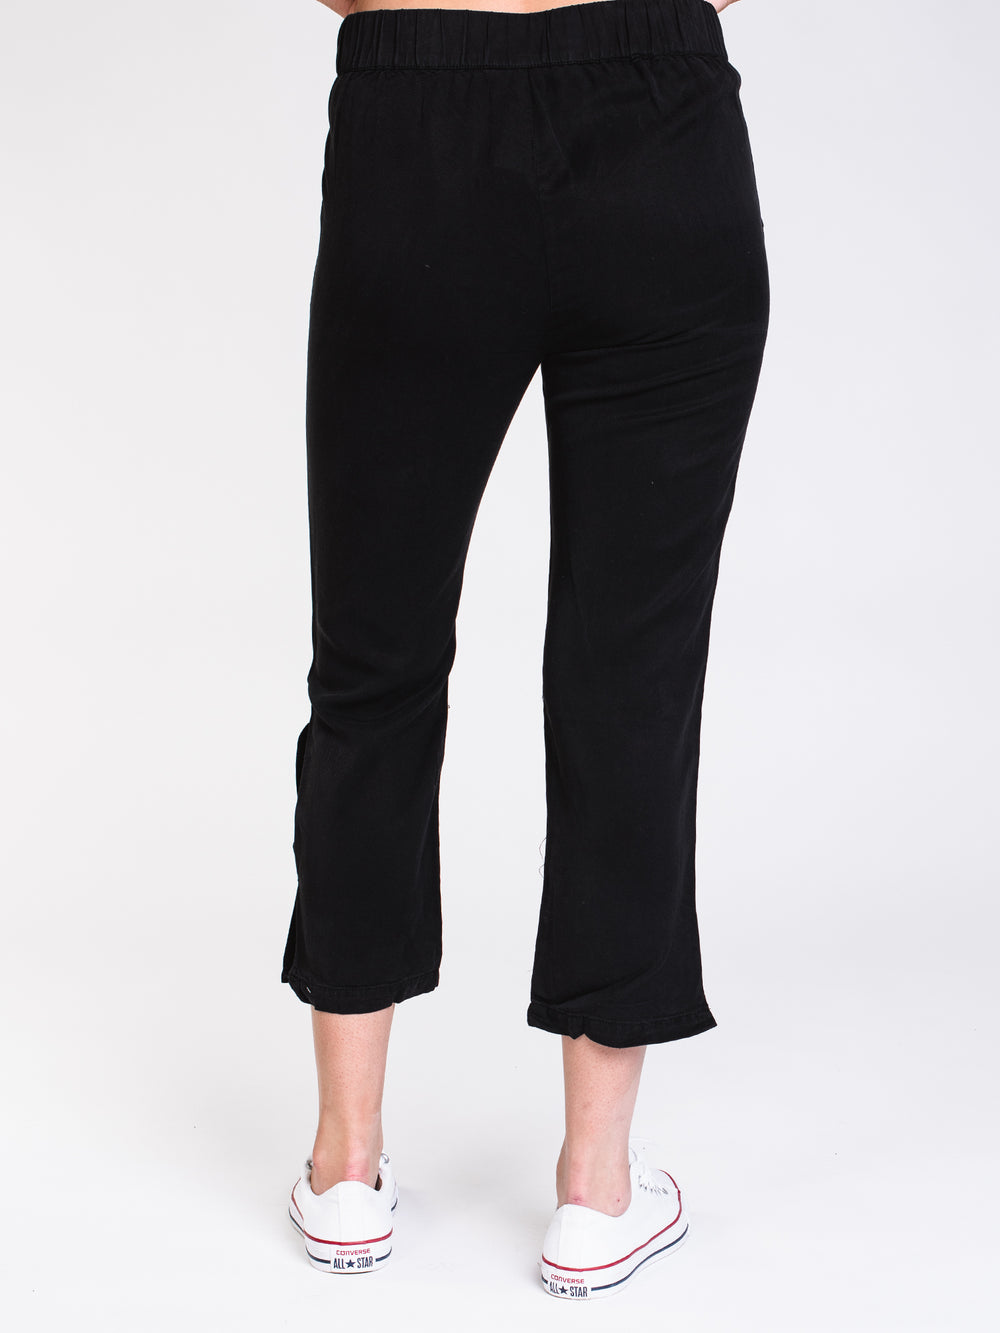 WOMENS LANGFORD 7/8 PANT - BLACK